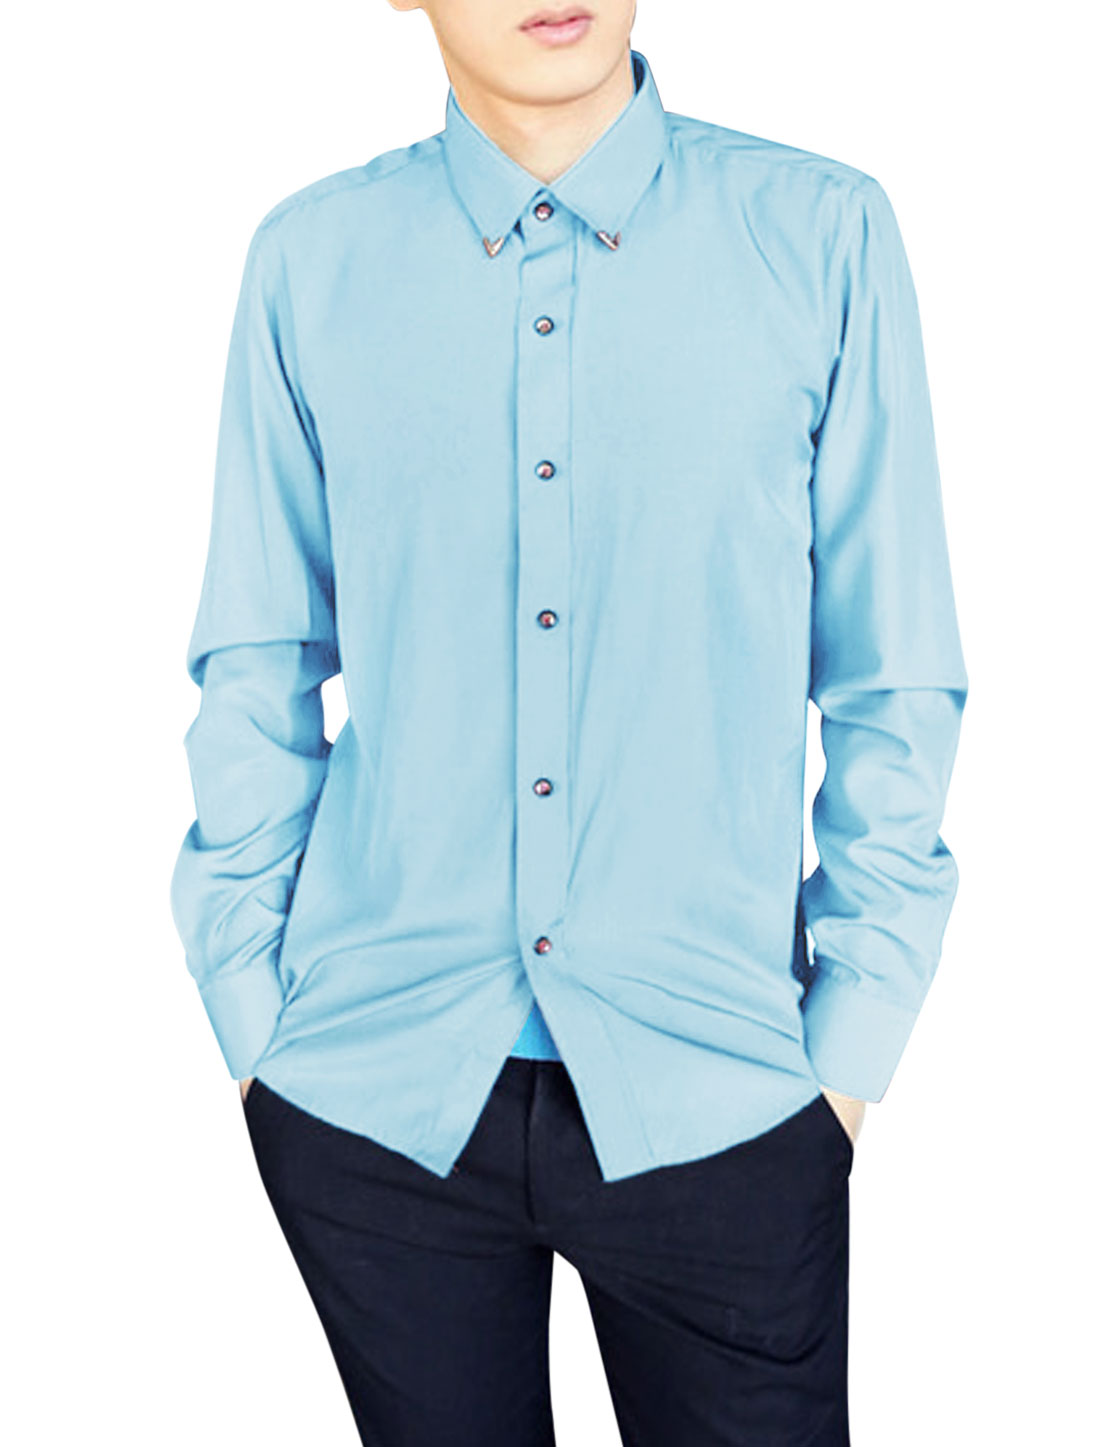 New Style Leisure Point Collar Long Sleeve Shirt for Men Baby Blue M